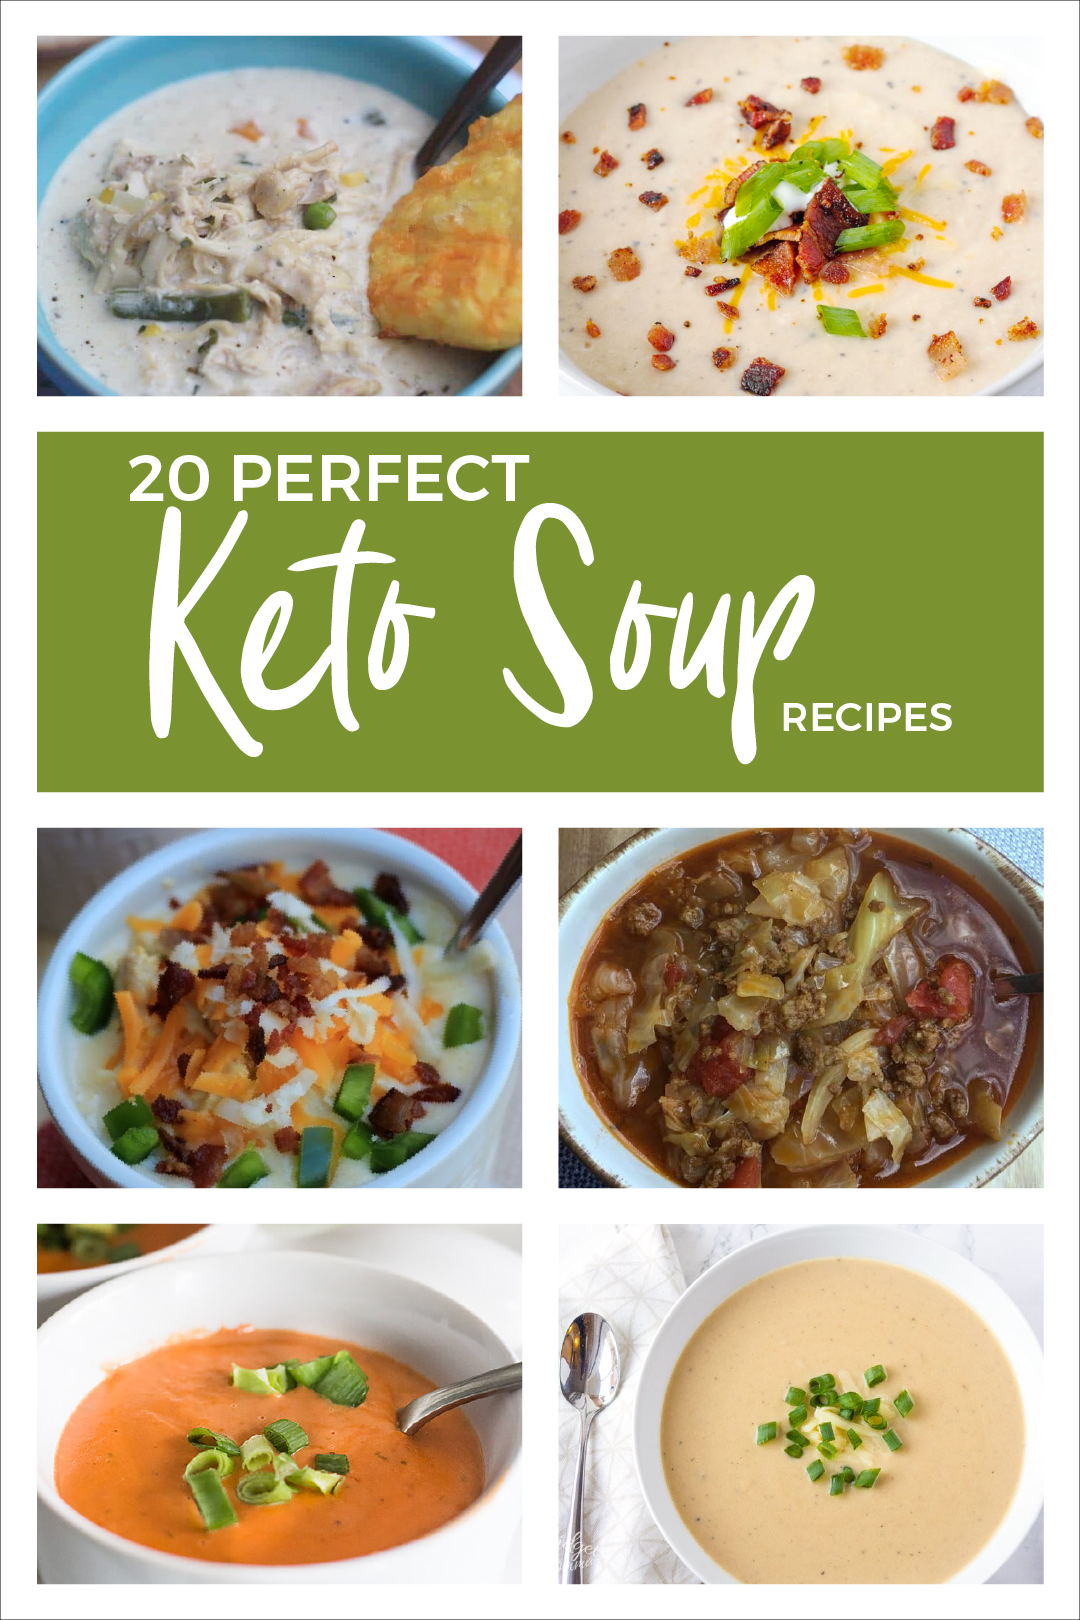 These 20 Keto soup recipes are certain to keep your bellies and your taste buds warm and toasty this cold, winter season.